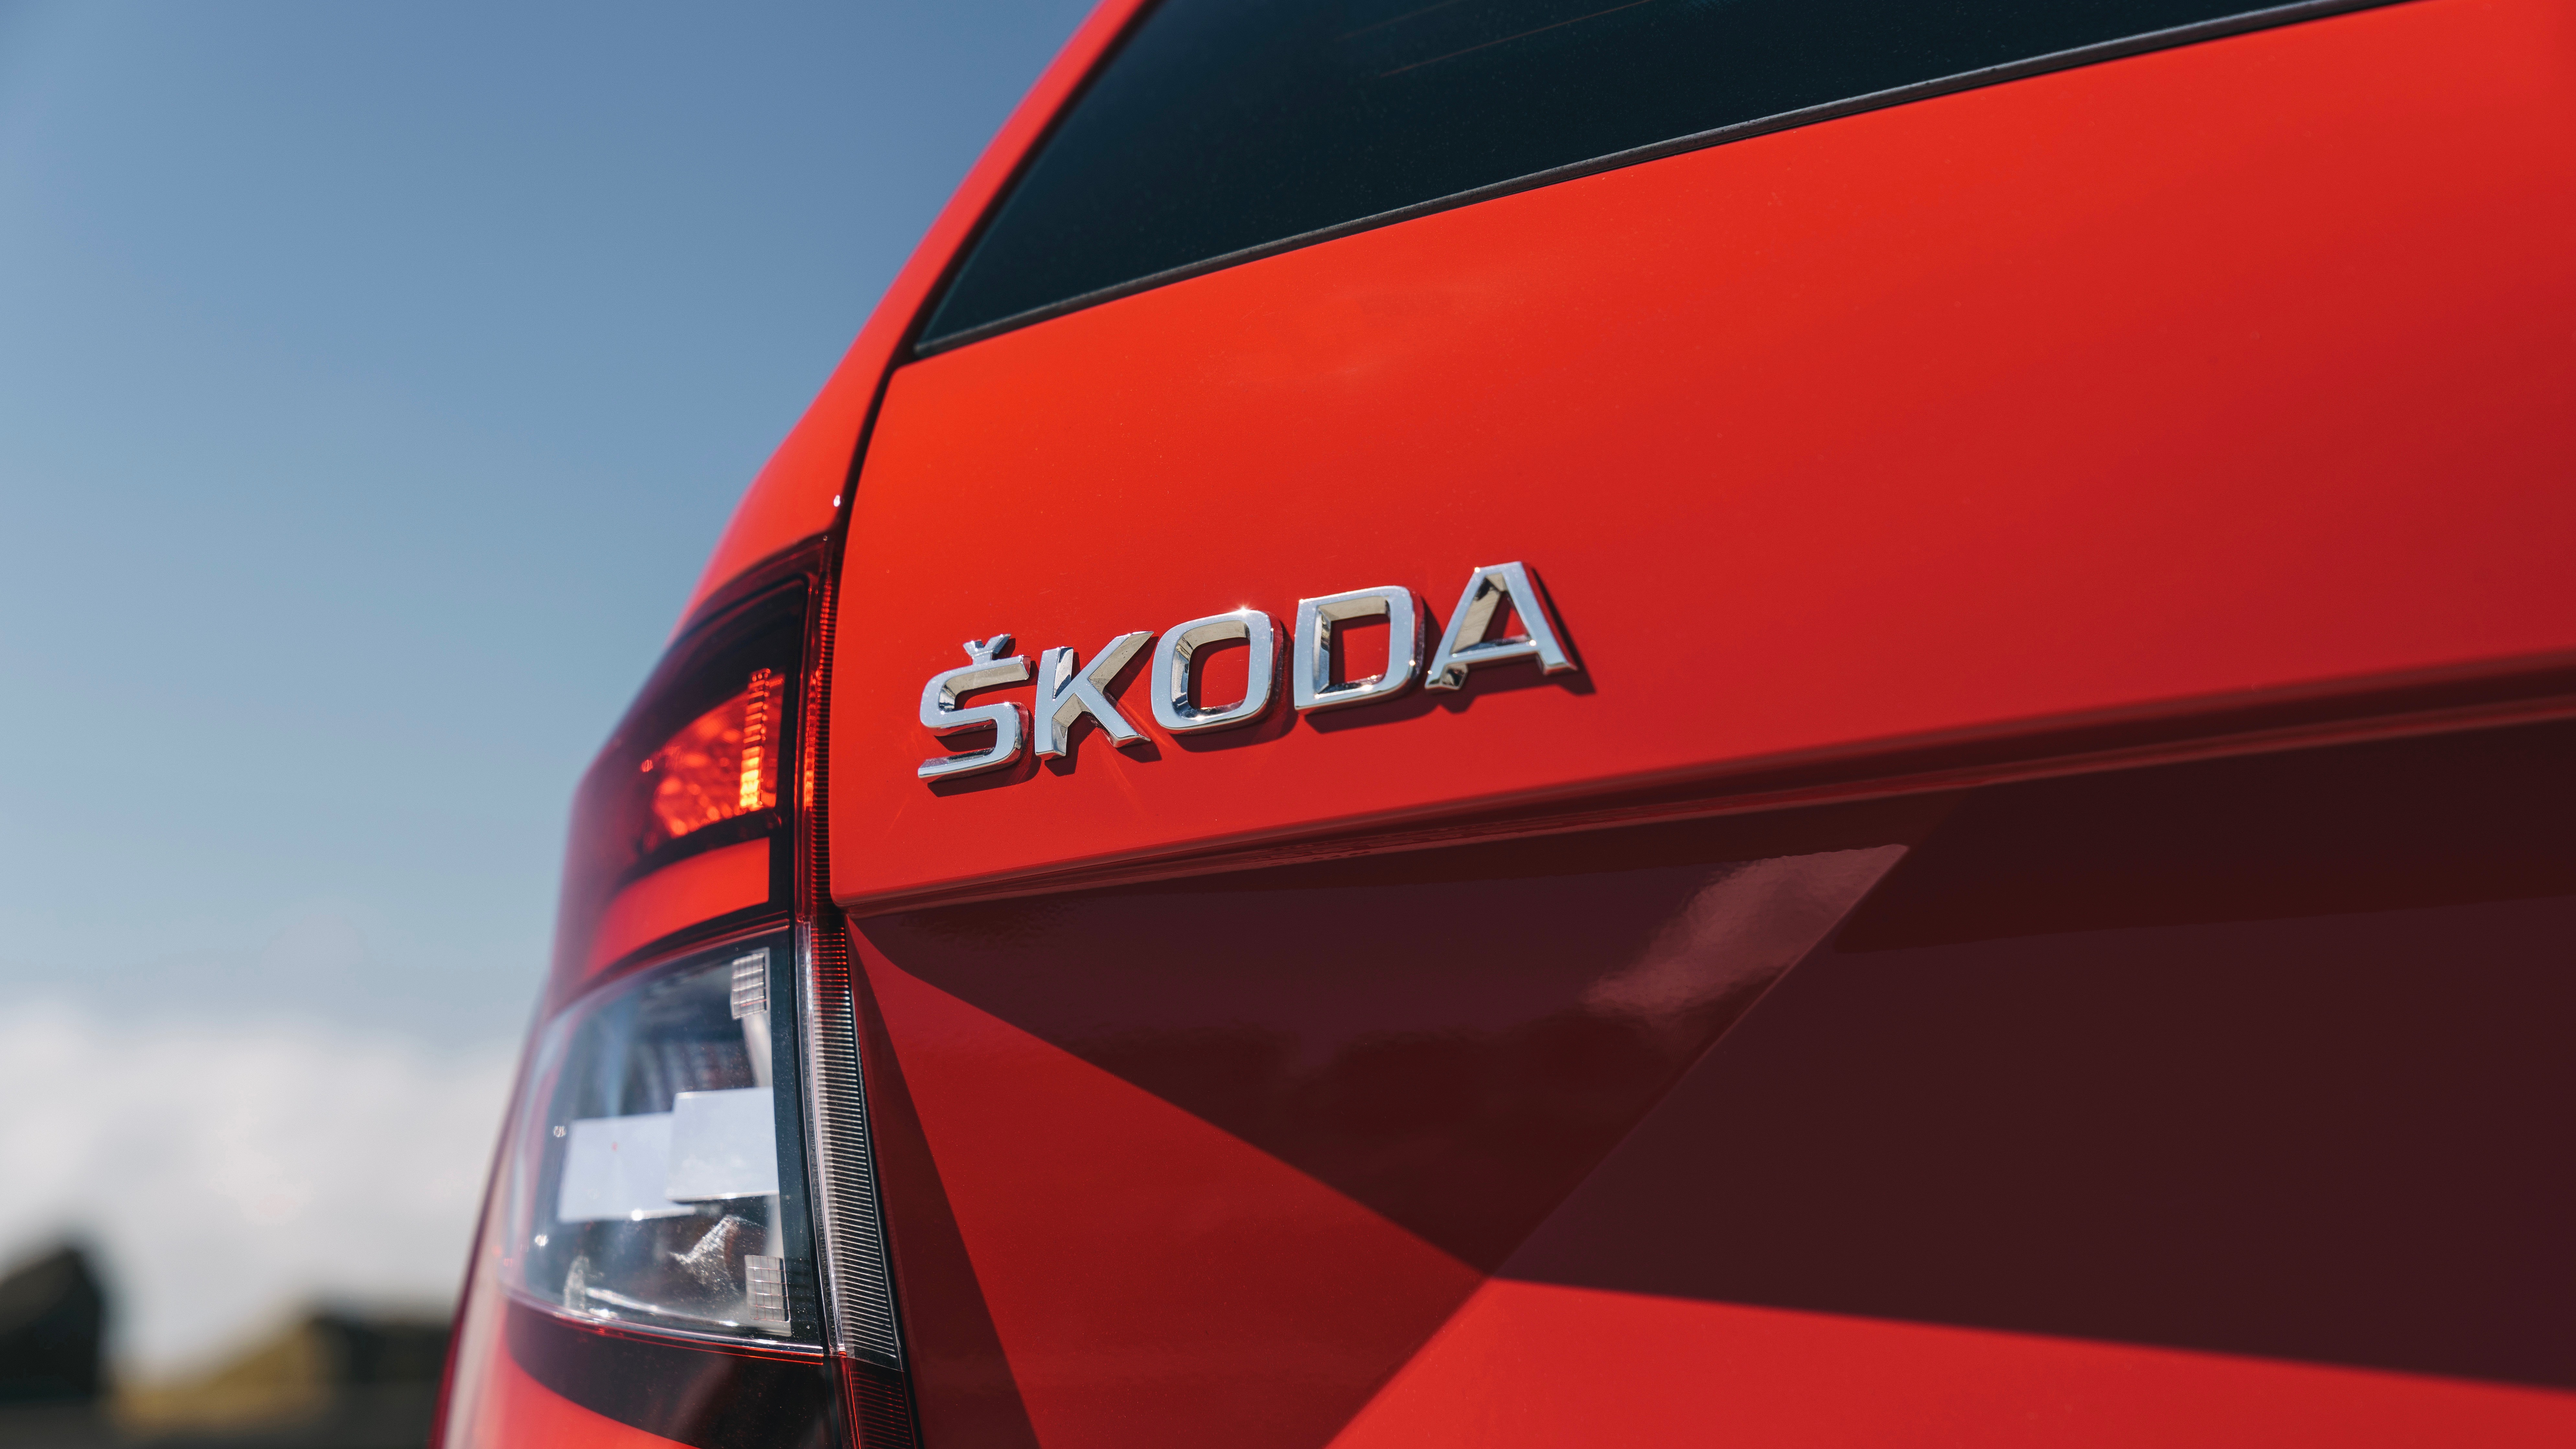 2018 Skoda Octavia RS245 red rear badge